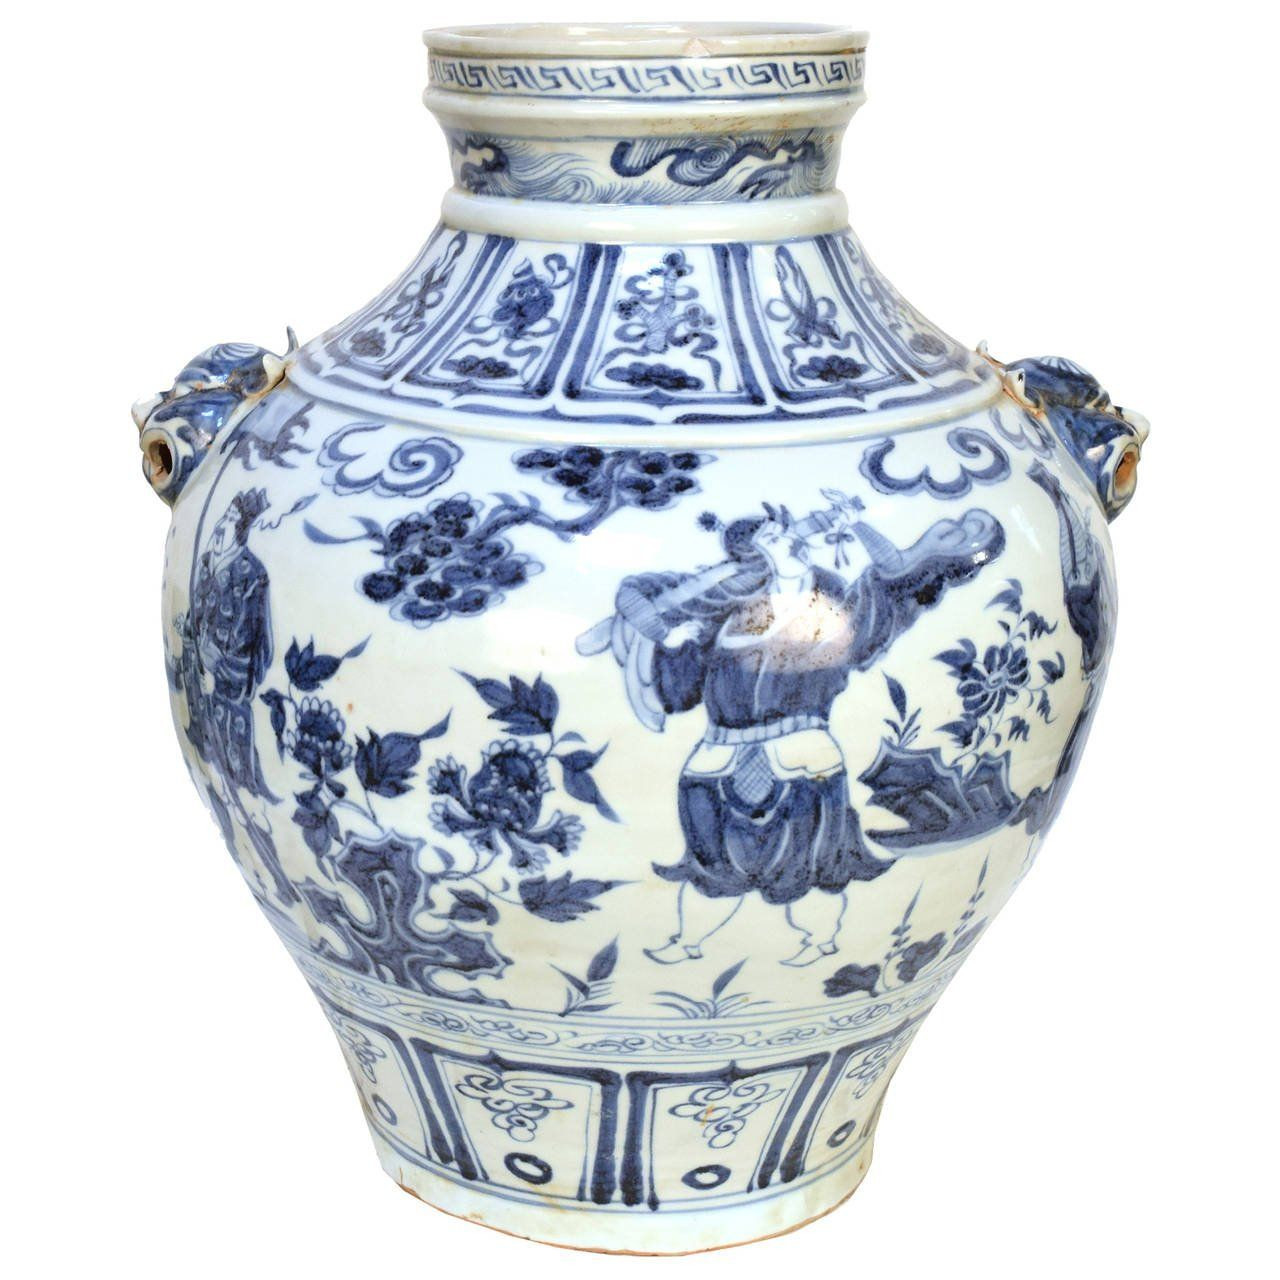 ming vases designs of ming style blue and white vase white vases within ming style blue and white vase